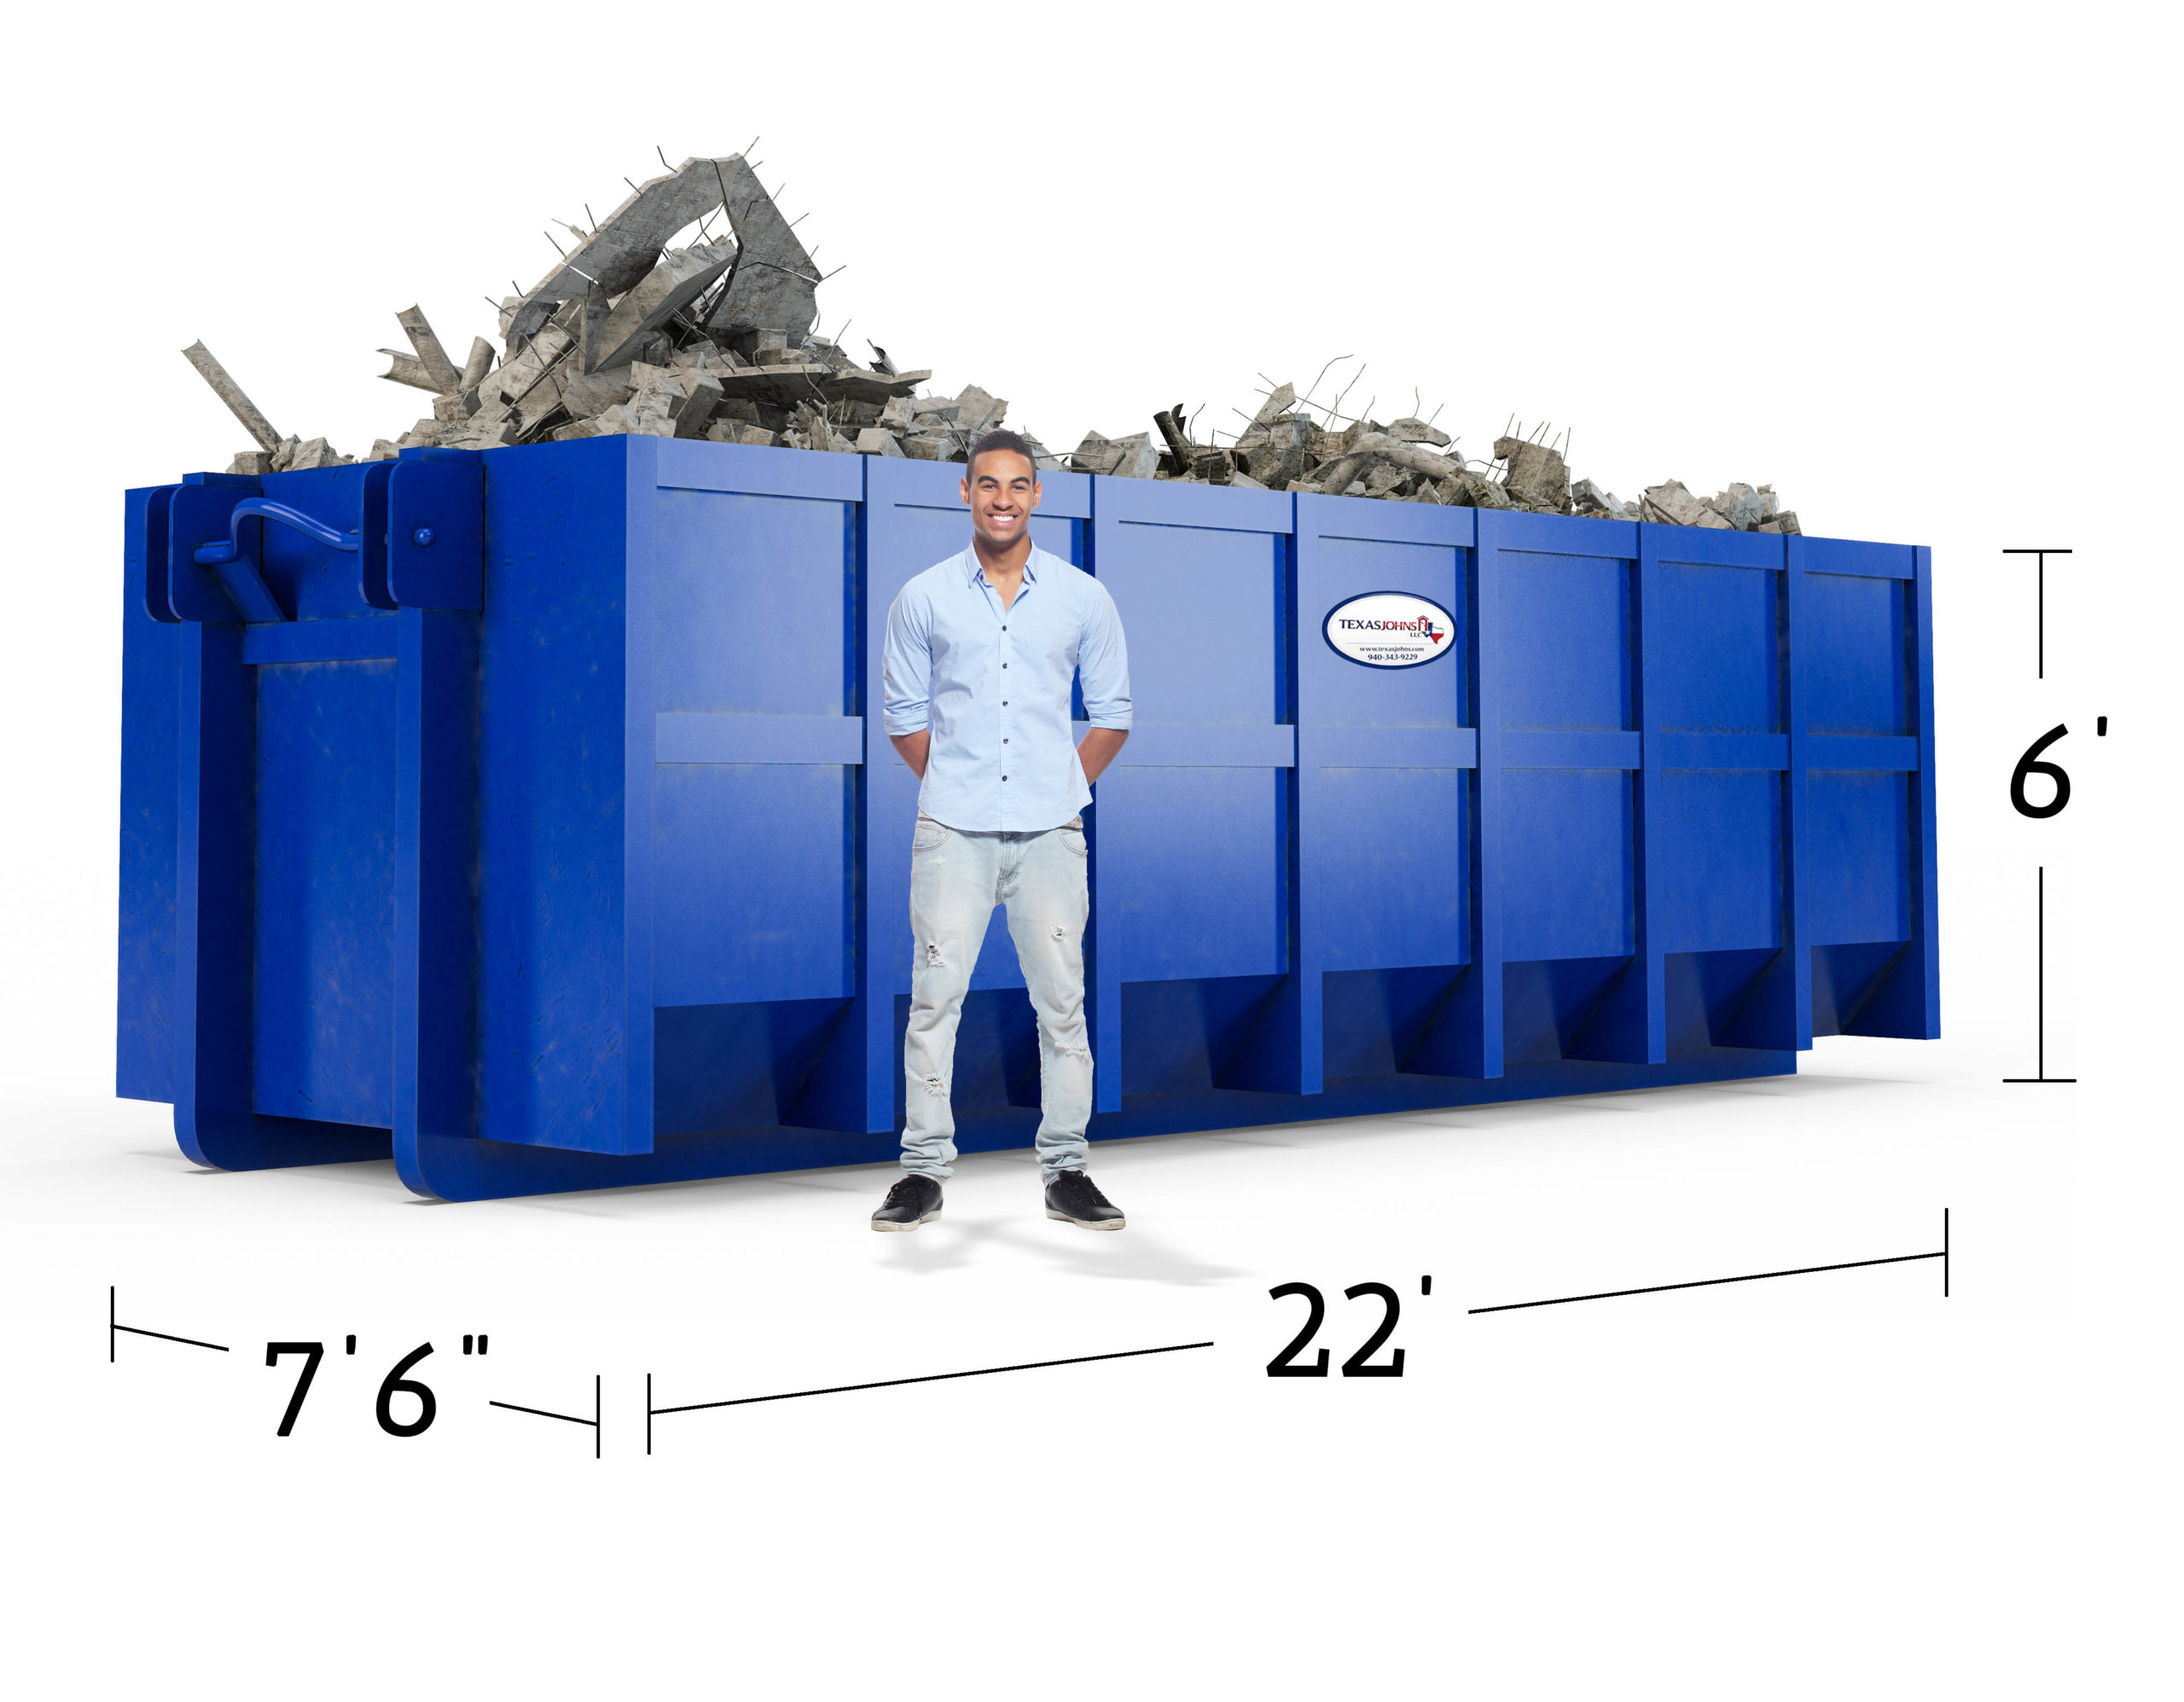 image of 7.5 x 22 x 4 dumpster